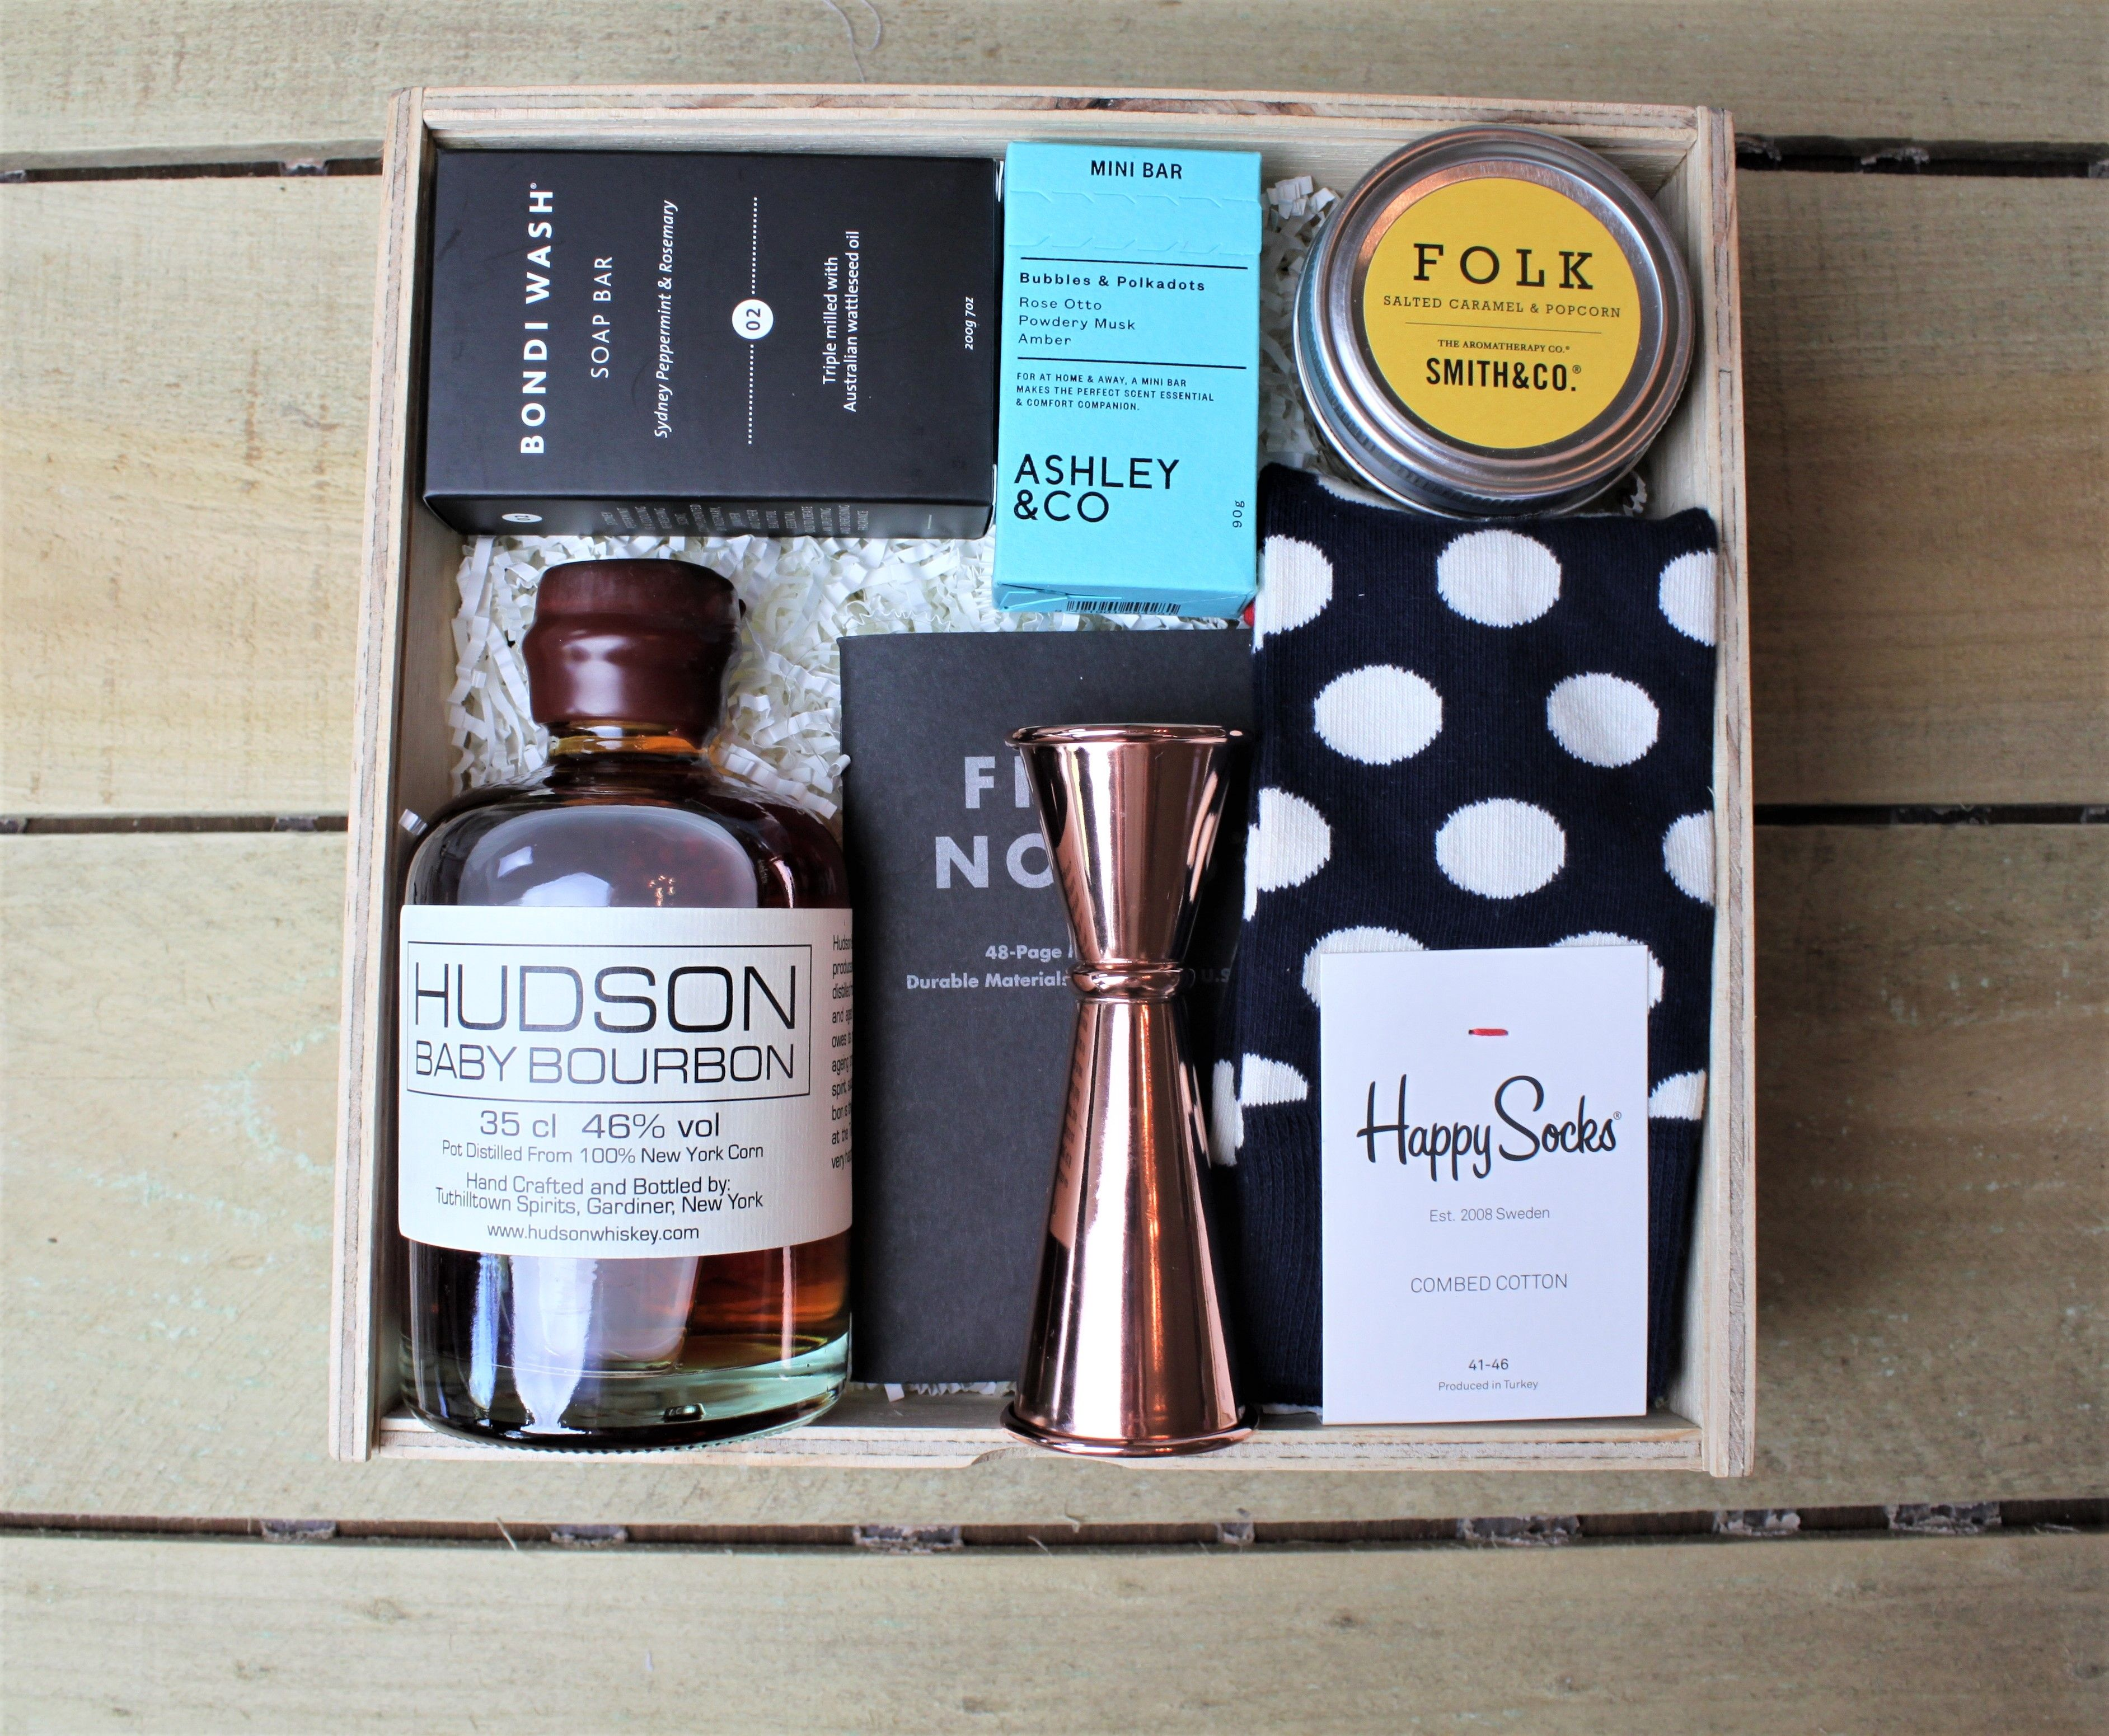 Design your own groomsmen gift on line we will wrap it